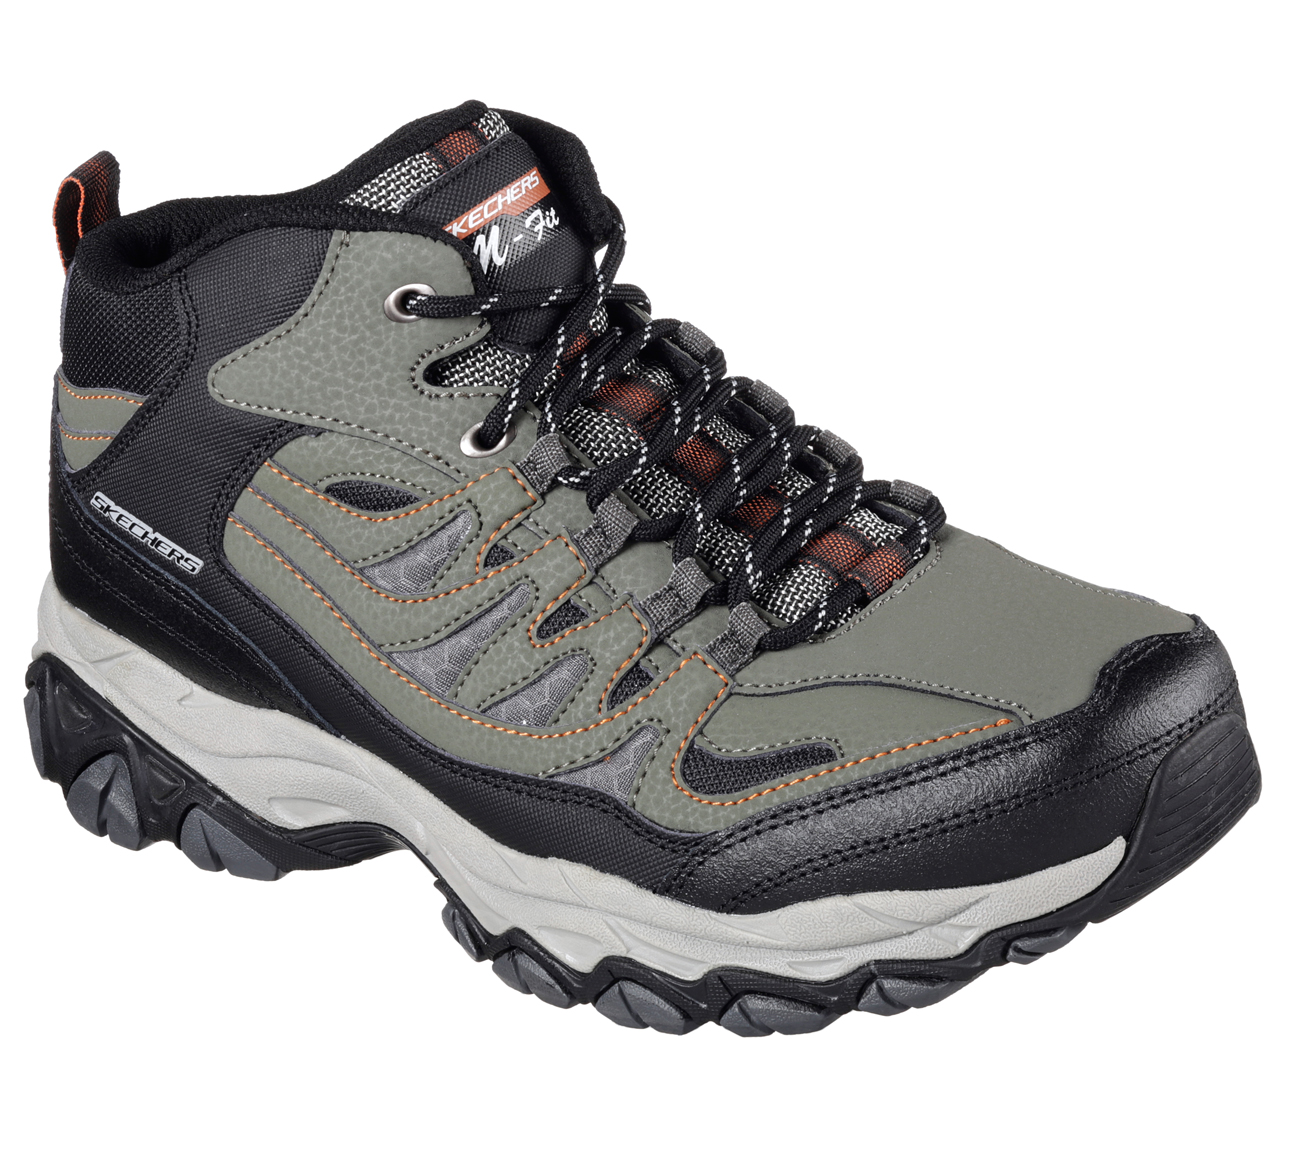 ebe54d579f31 Buy SKECHERS After Burn Memory Fit - Geardo Training Shoes Shoes only  70.00